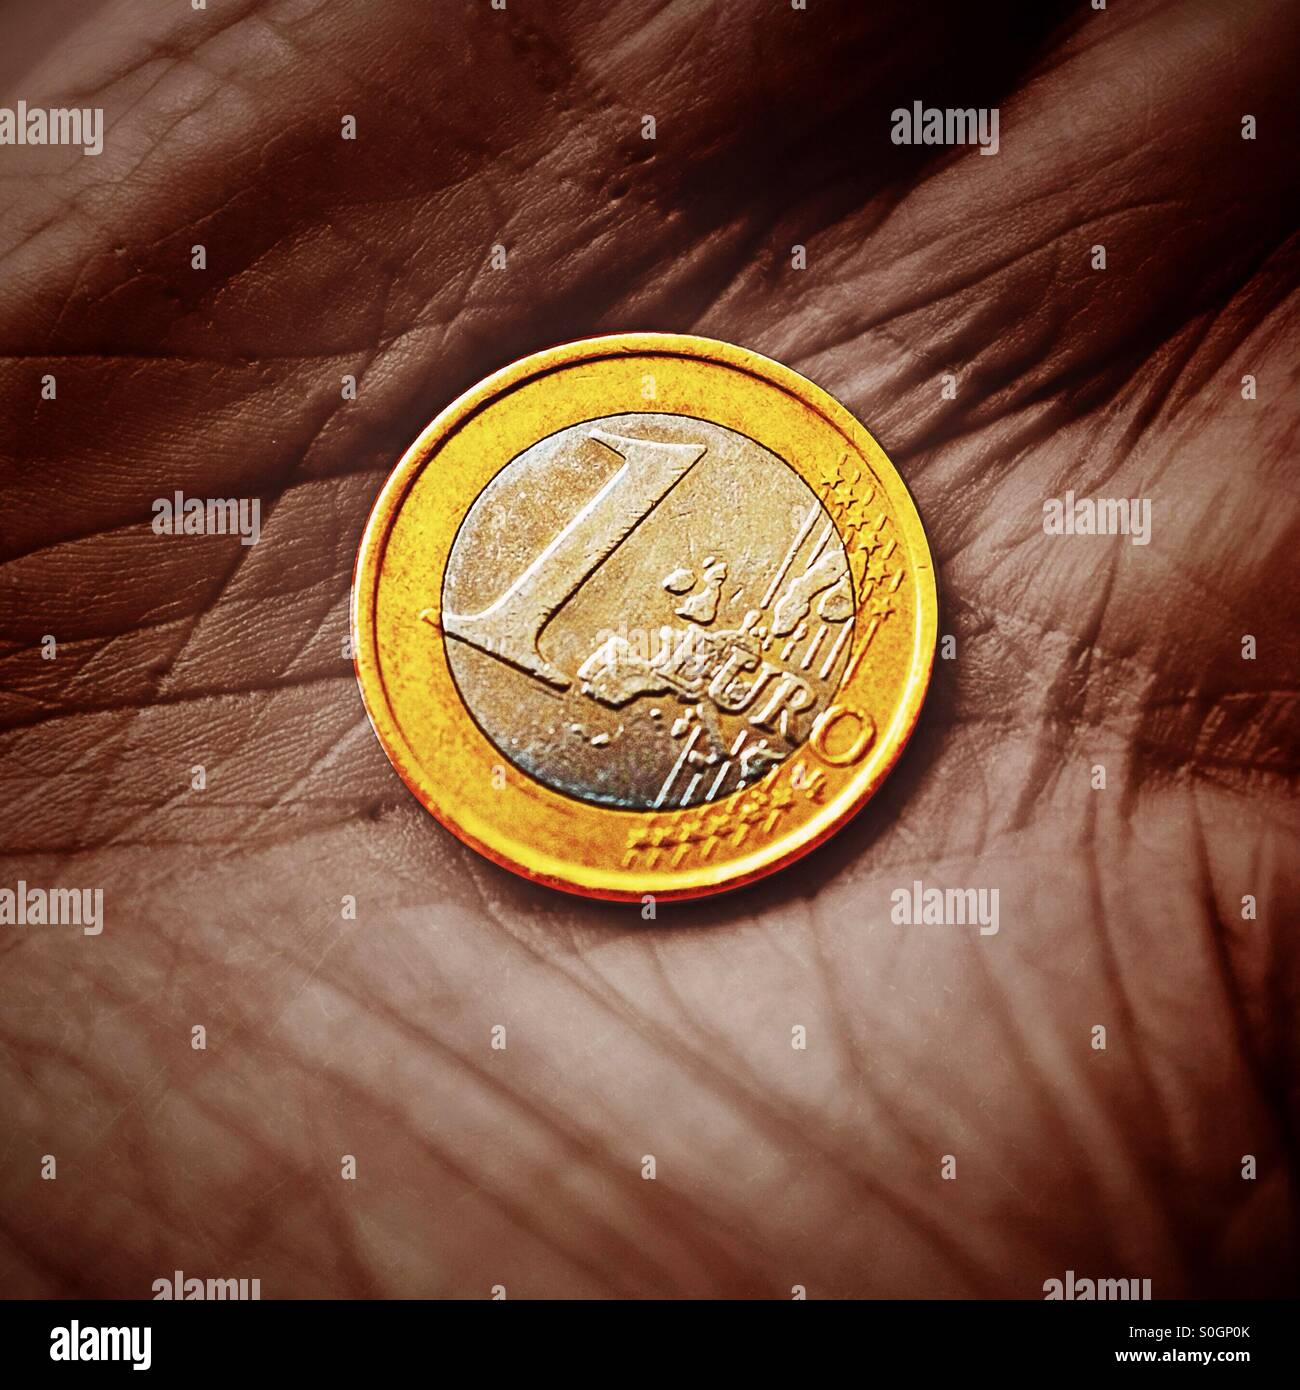 A close up of a Euro coin in a pensioner's hand - Stock Image